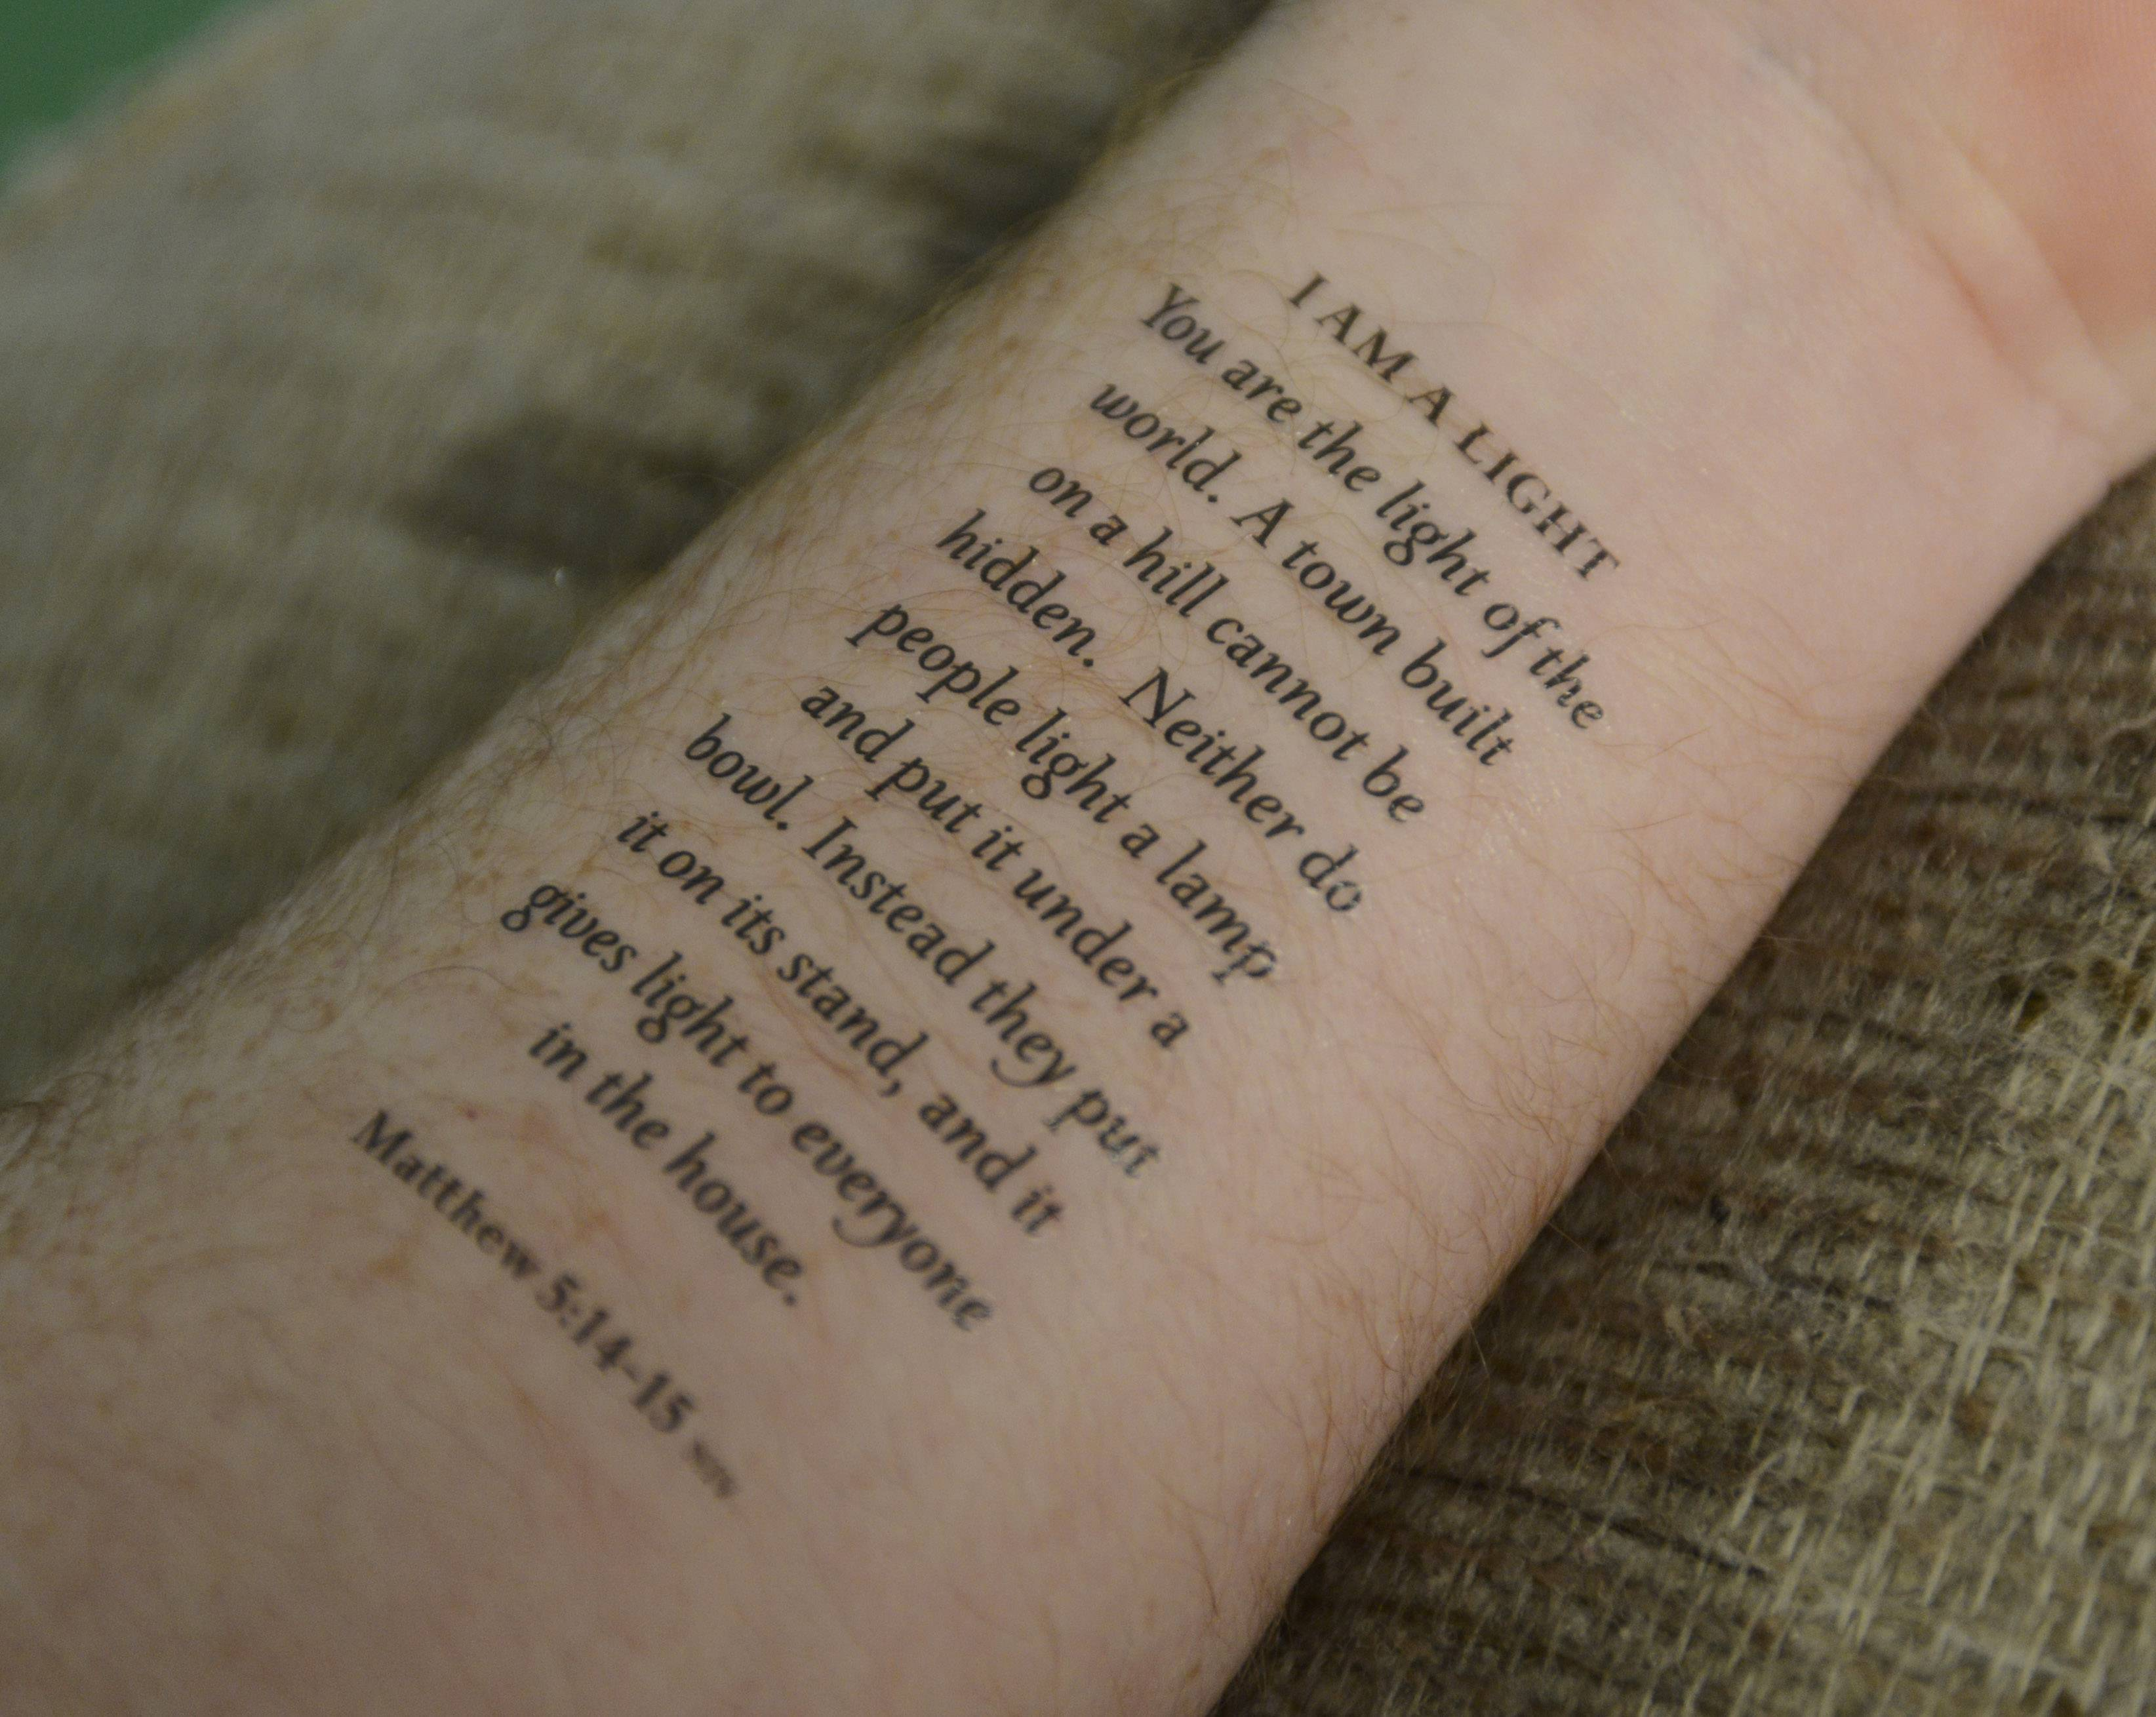 This temporary tattoo of a Biblical passage is on a person's forearm.